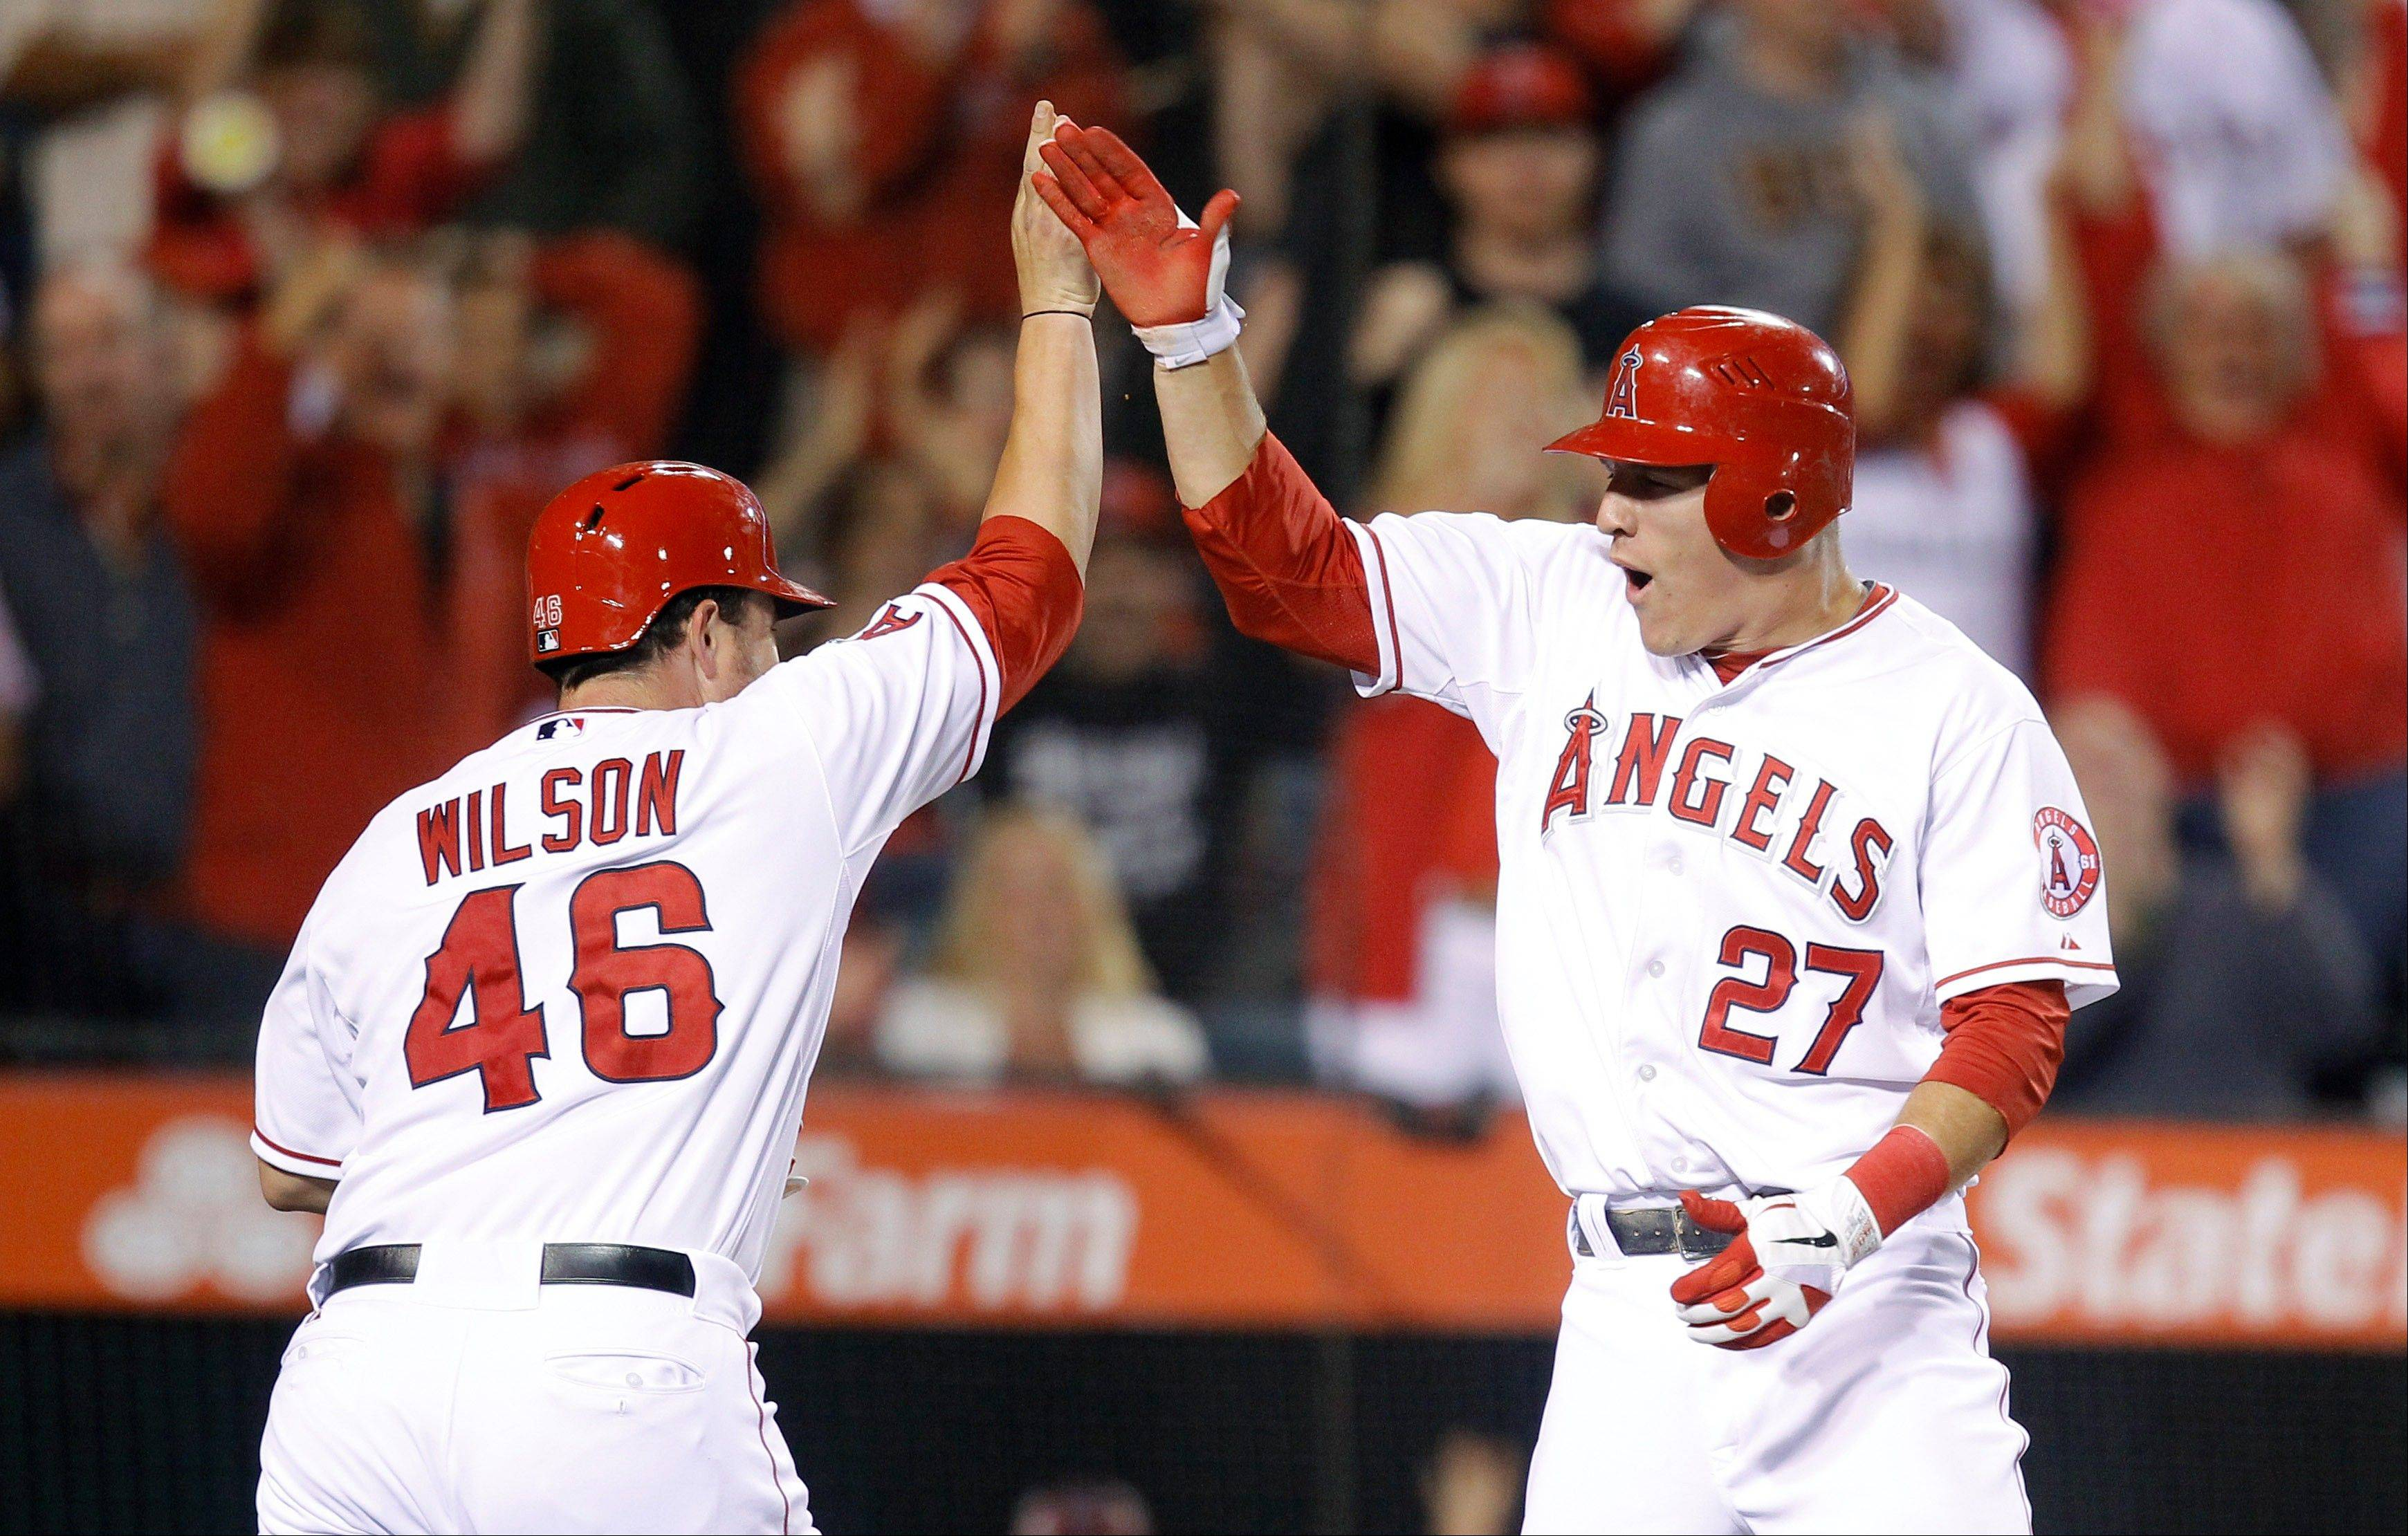 The Angels' Mike Trout, right, and Bobby Wilson high-five after they scored on a single by Torii Hunter in the sixth inning Friday against the Dodgers in Anaheim.